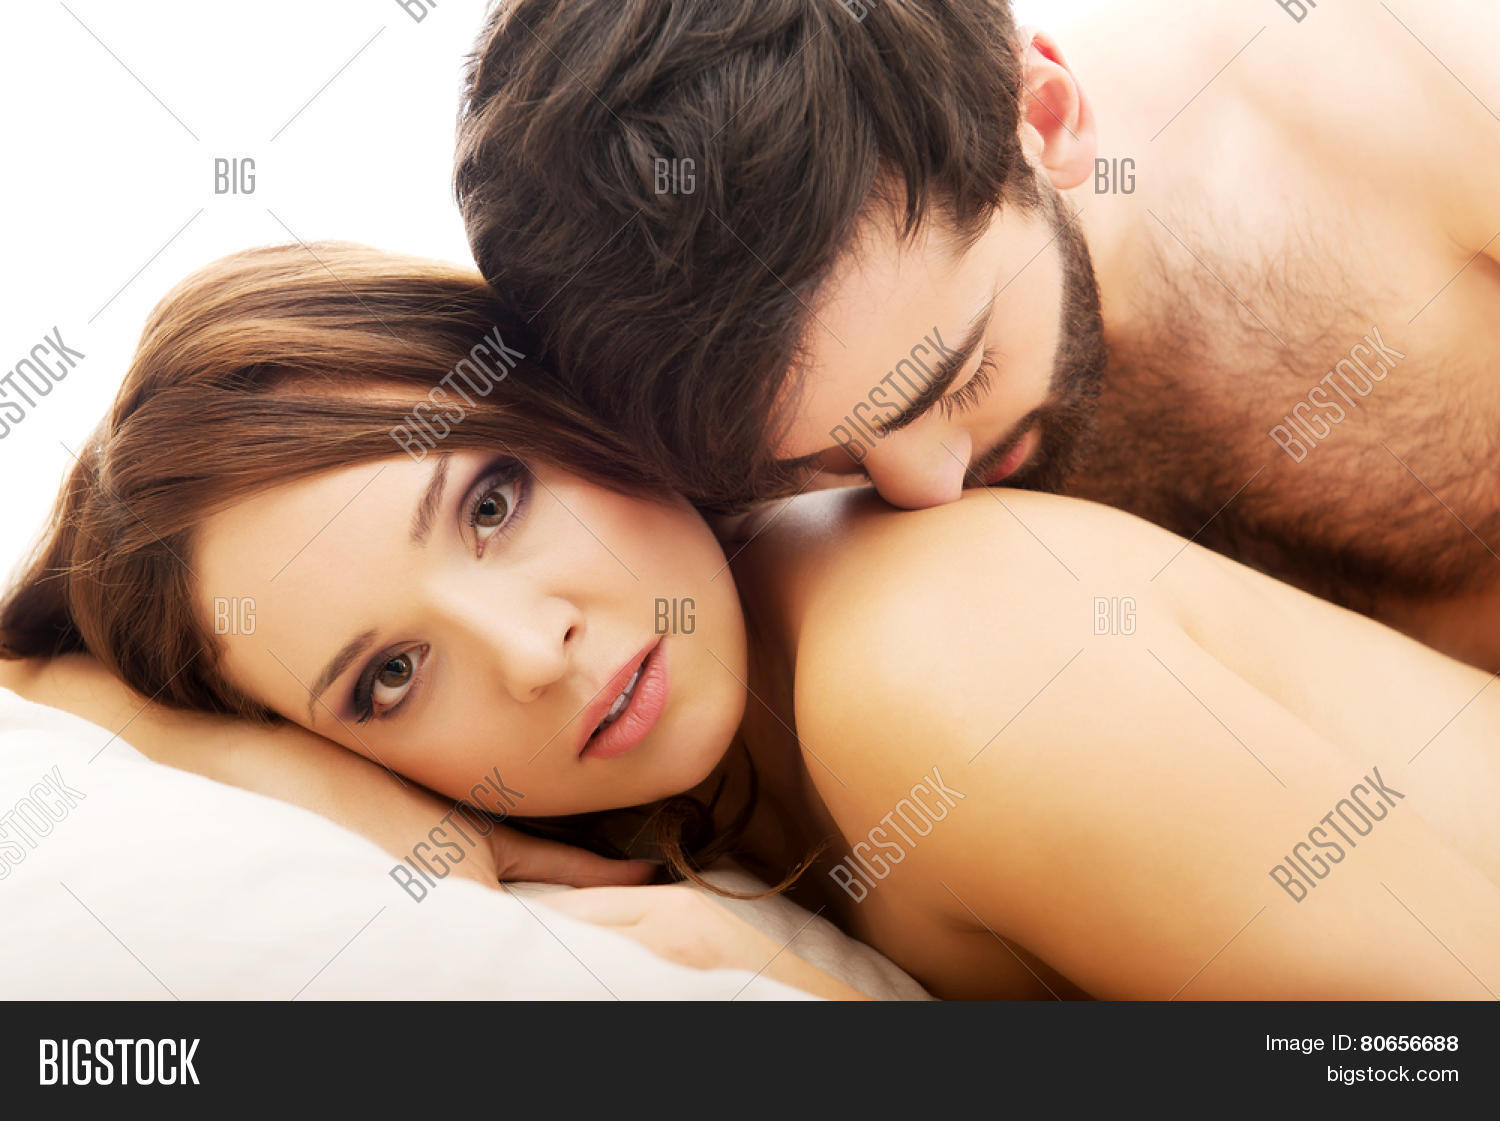 Young love couple in bed  romantic scene in bedroom. Young Love Couple Bed  Romantic Image   Photo   Bigstock